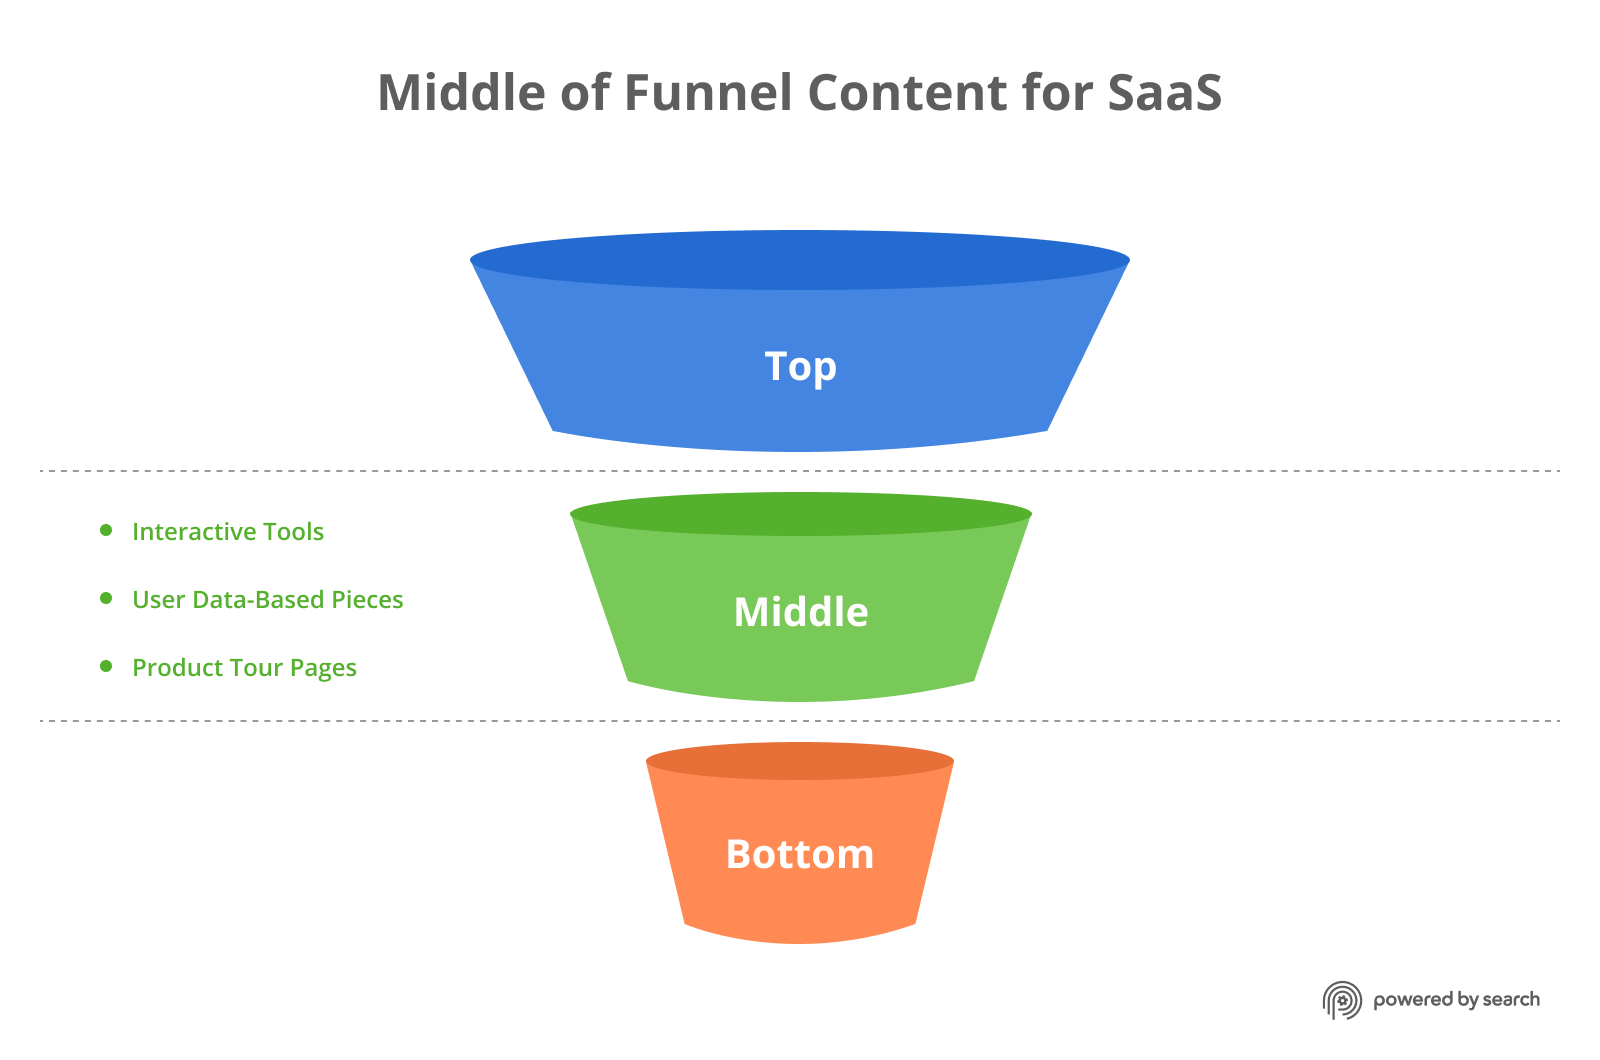 Middle of the funnel content types for B2B SaaS